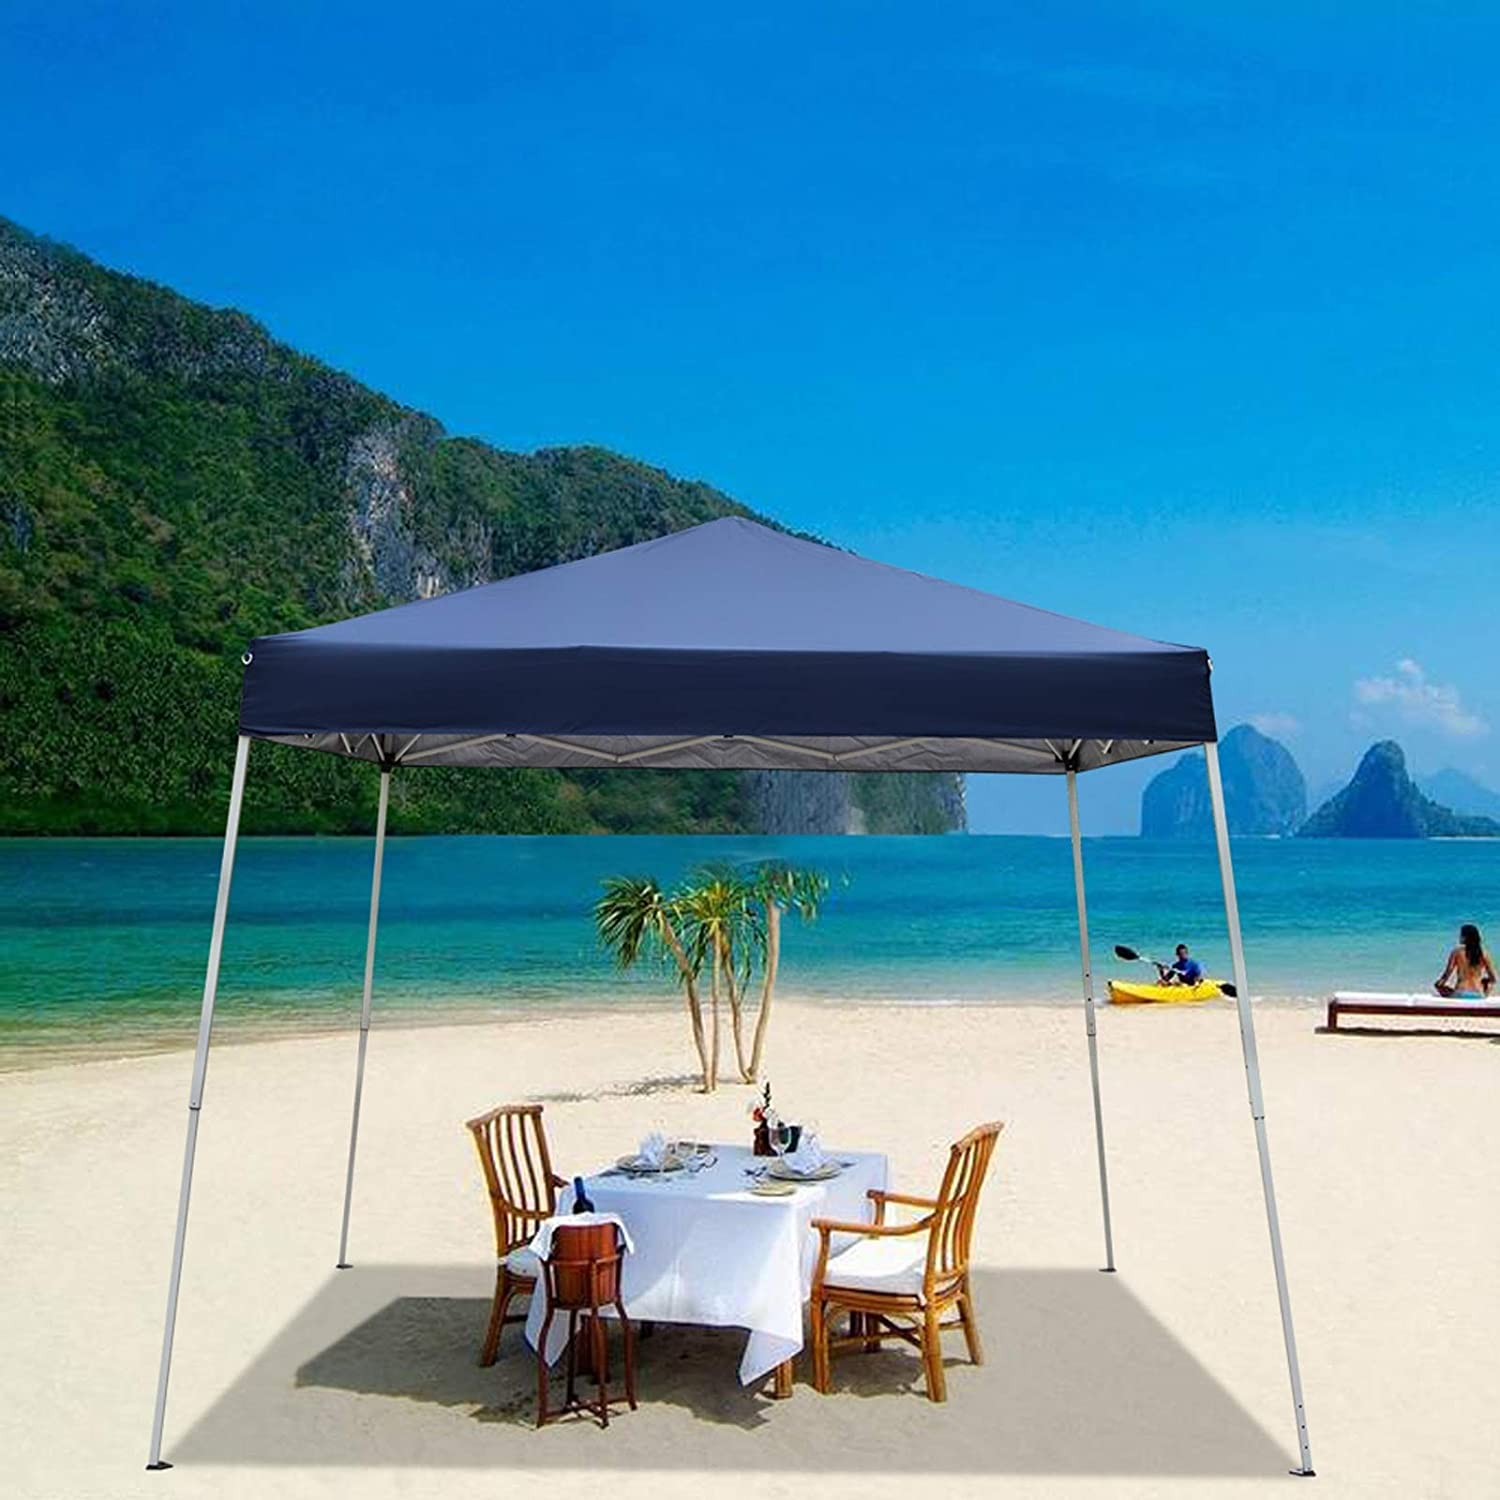 Awnings Commercial Tents Beach Gazebo Rope Bag 40% OFF Cheap Sale Carry And At the price of surprise With